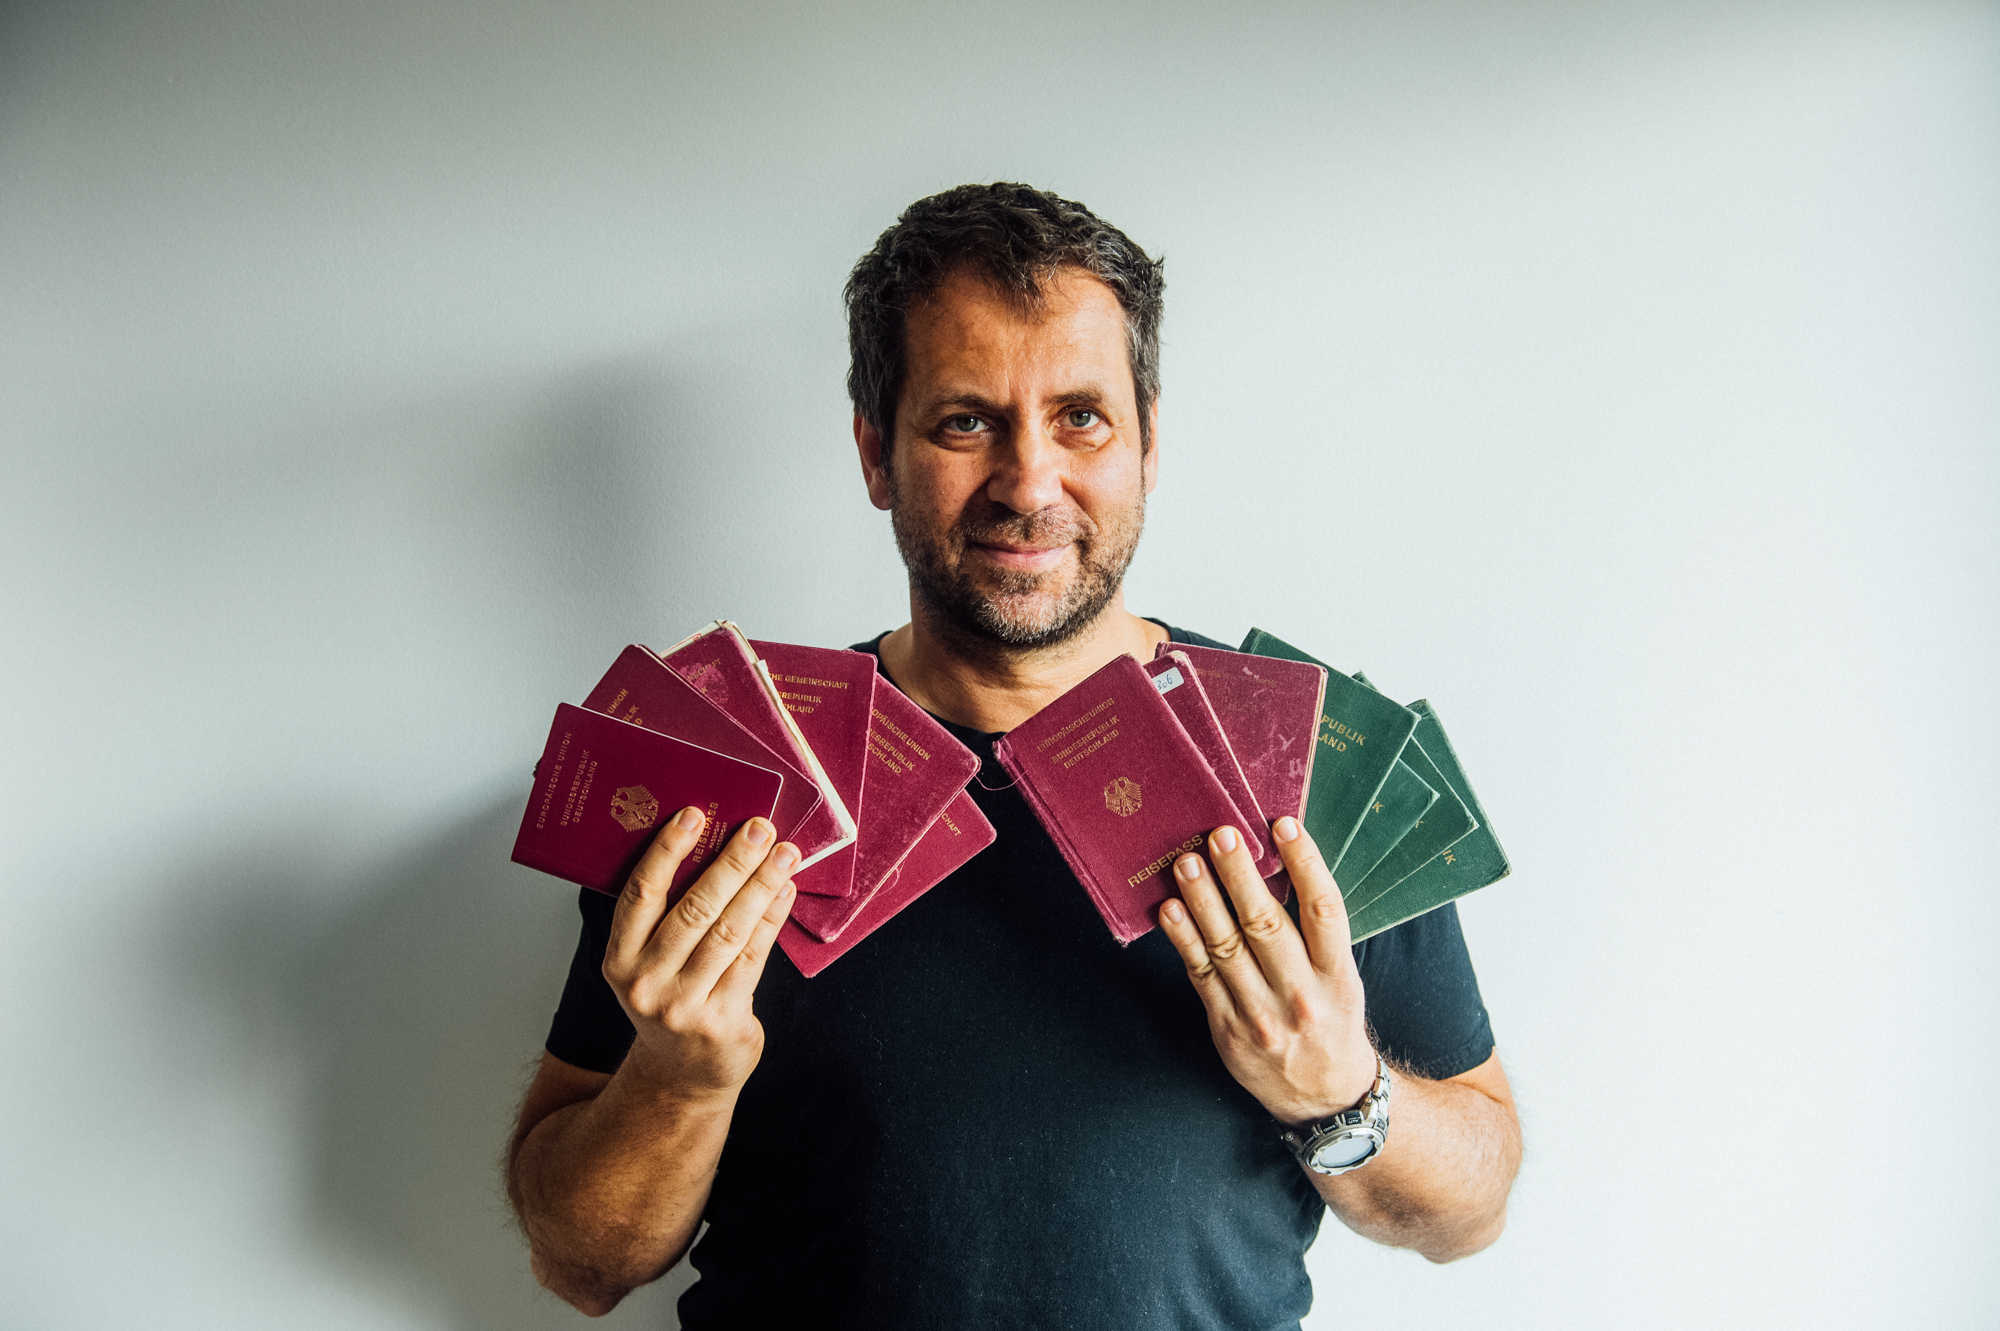 Michael Runkel holds 13 passports after completing traveling through all 193 U.N. countries.